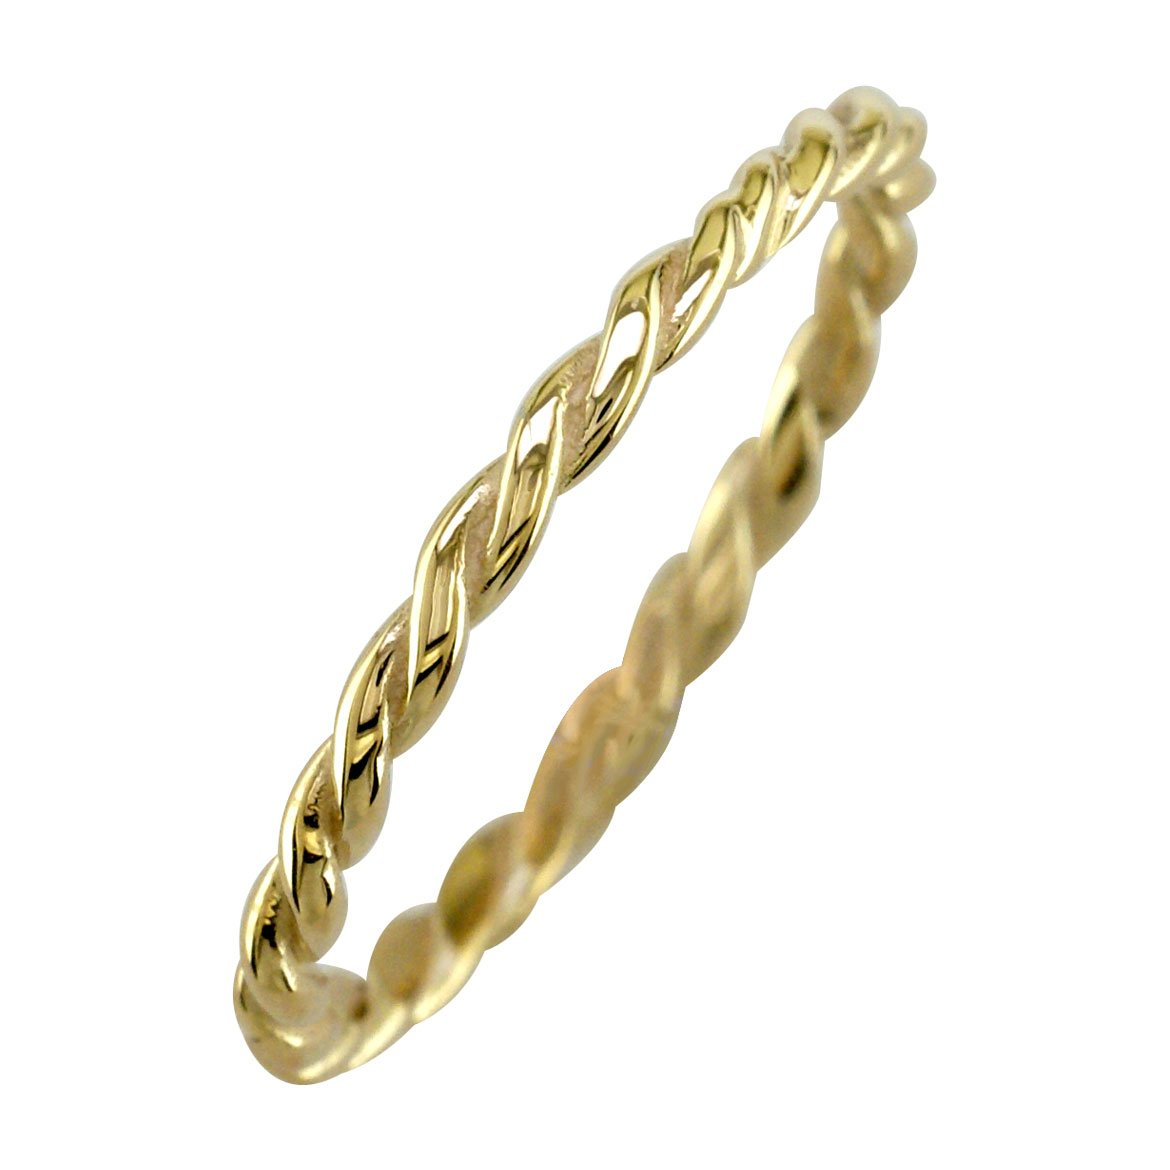 Stackable Rope Ring, 1.8mm in 14k Yellow Gold - size 5